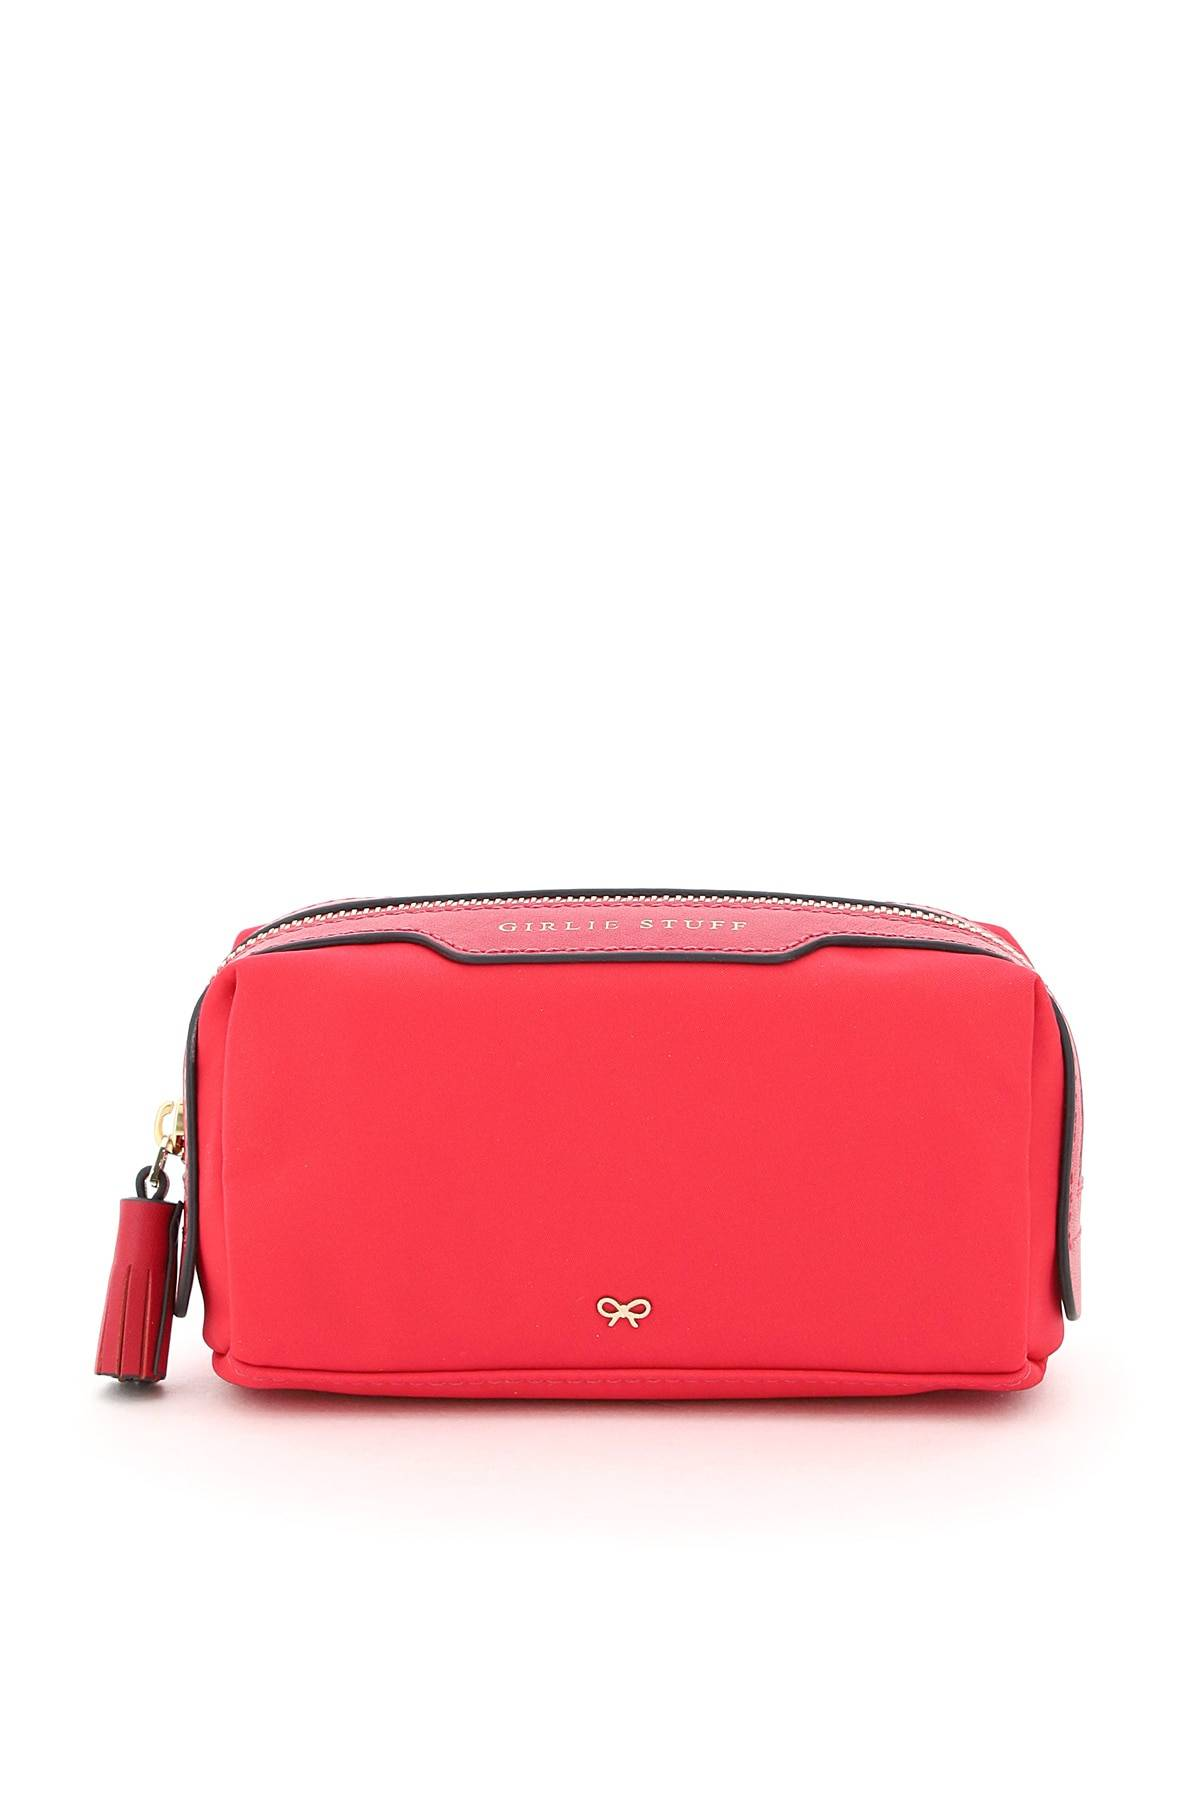 anya hindmarch pouch in nylon girlie stuff os fuxia, rosa pelle, tecnico